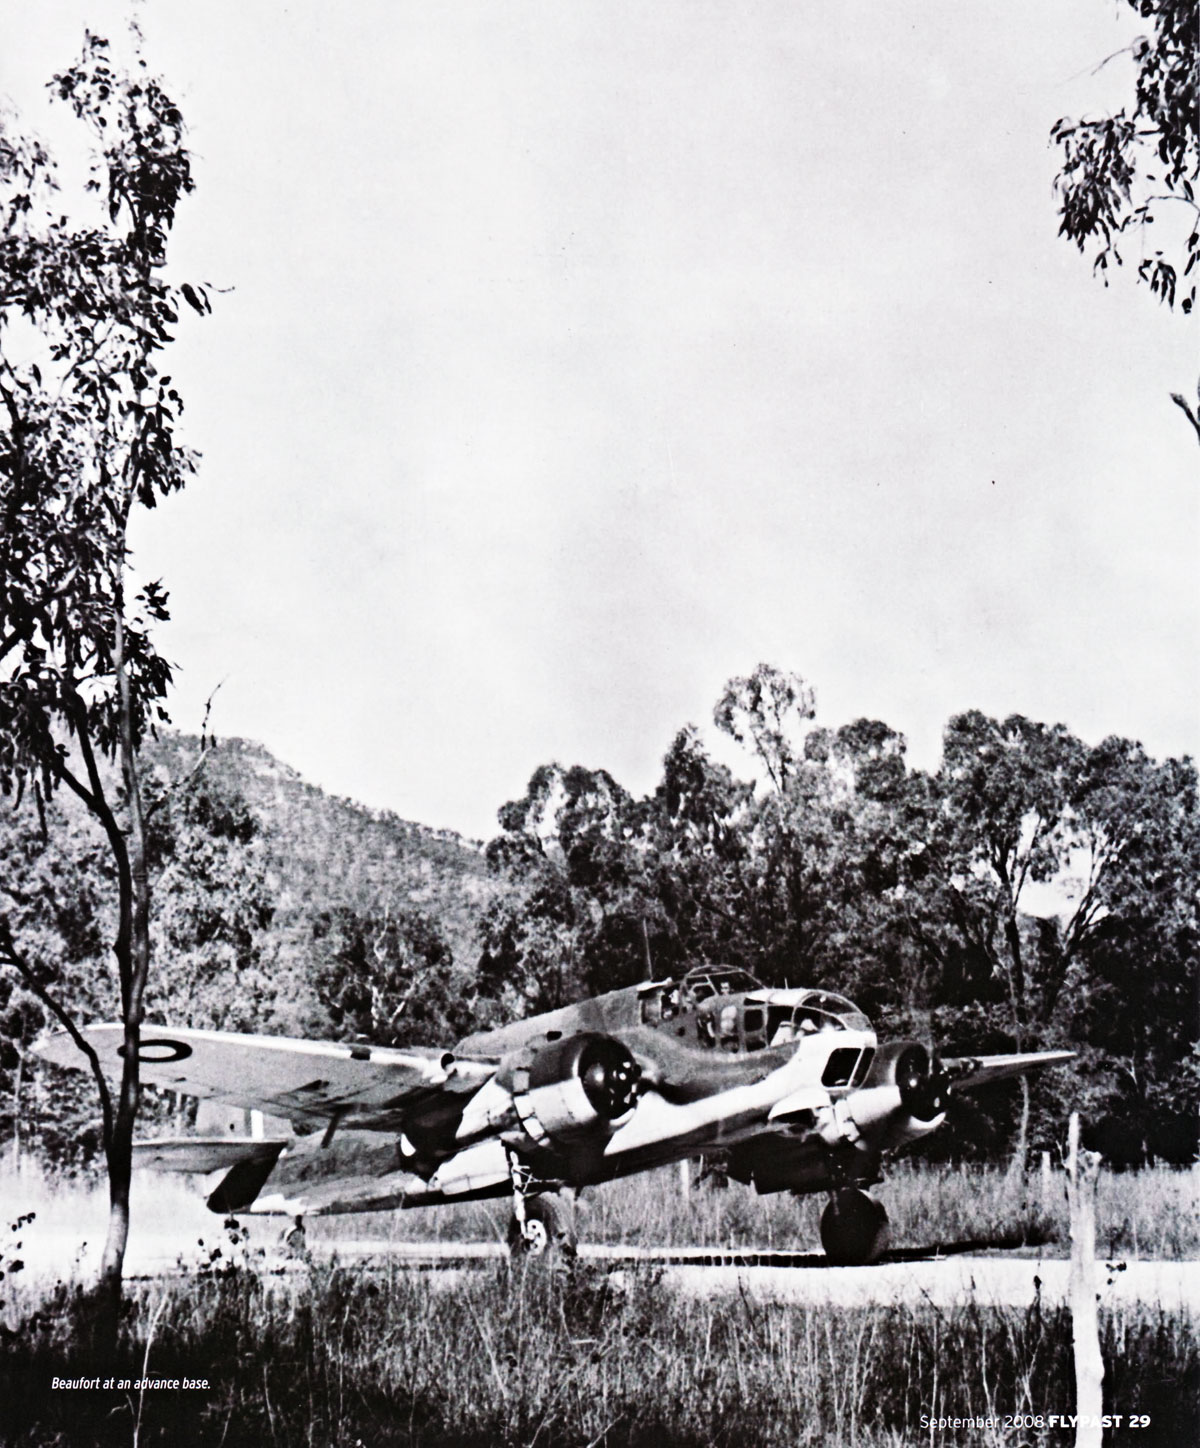 Bristol Beaufort RAAF New Guinea advance base 01